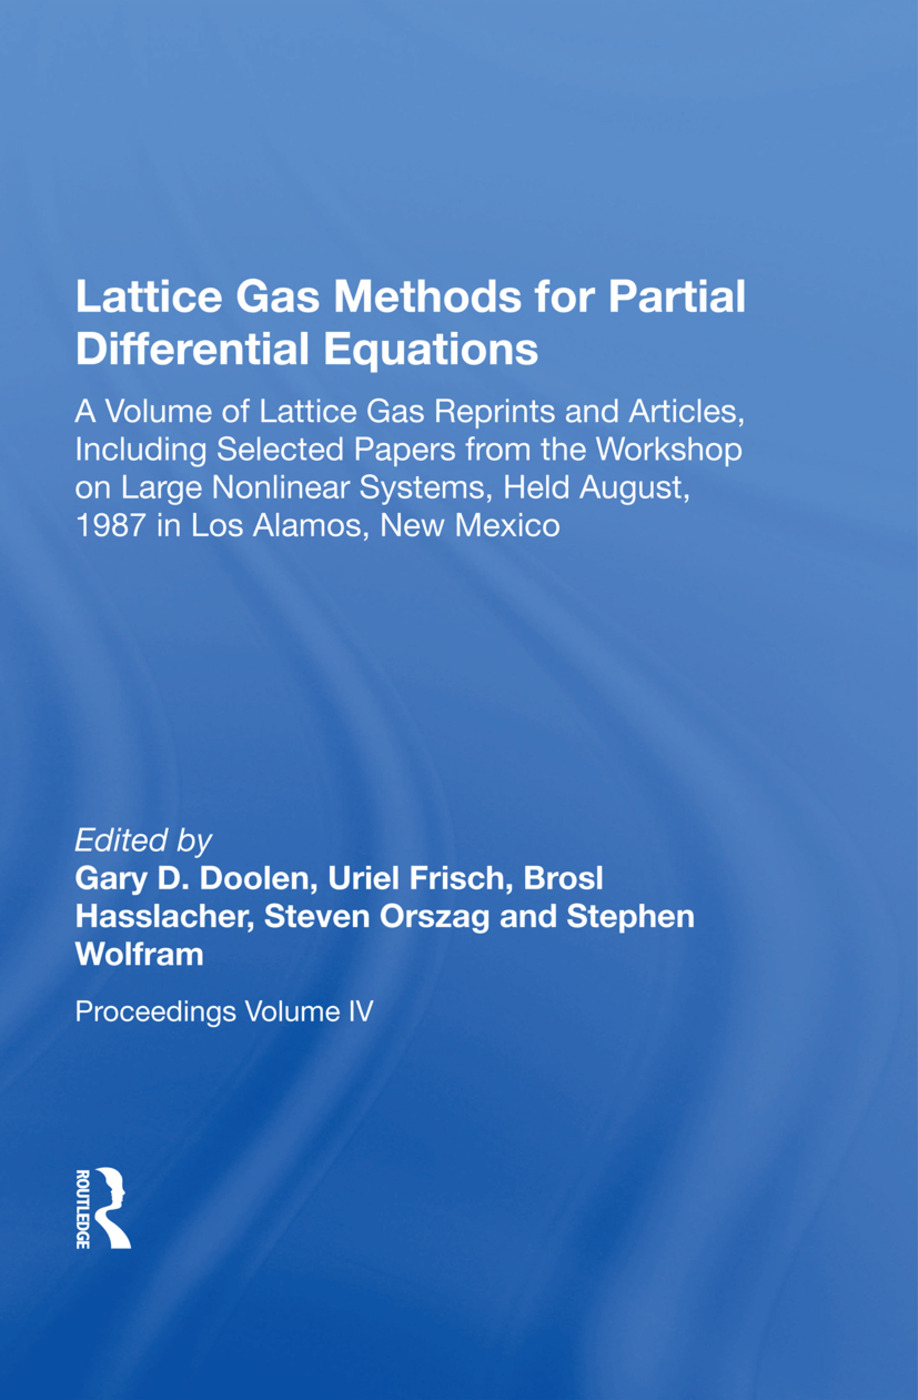 Lattice Gas Methods For Partial Differential Equations book cover